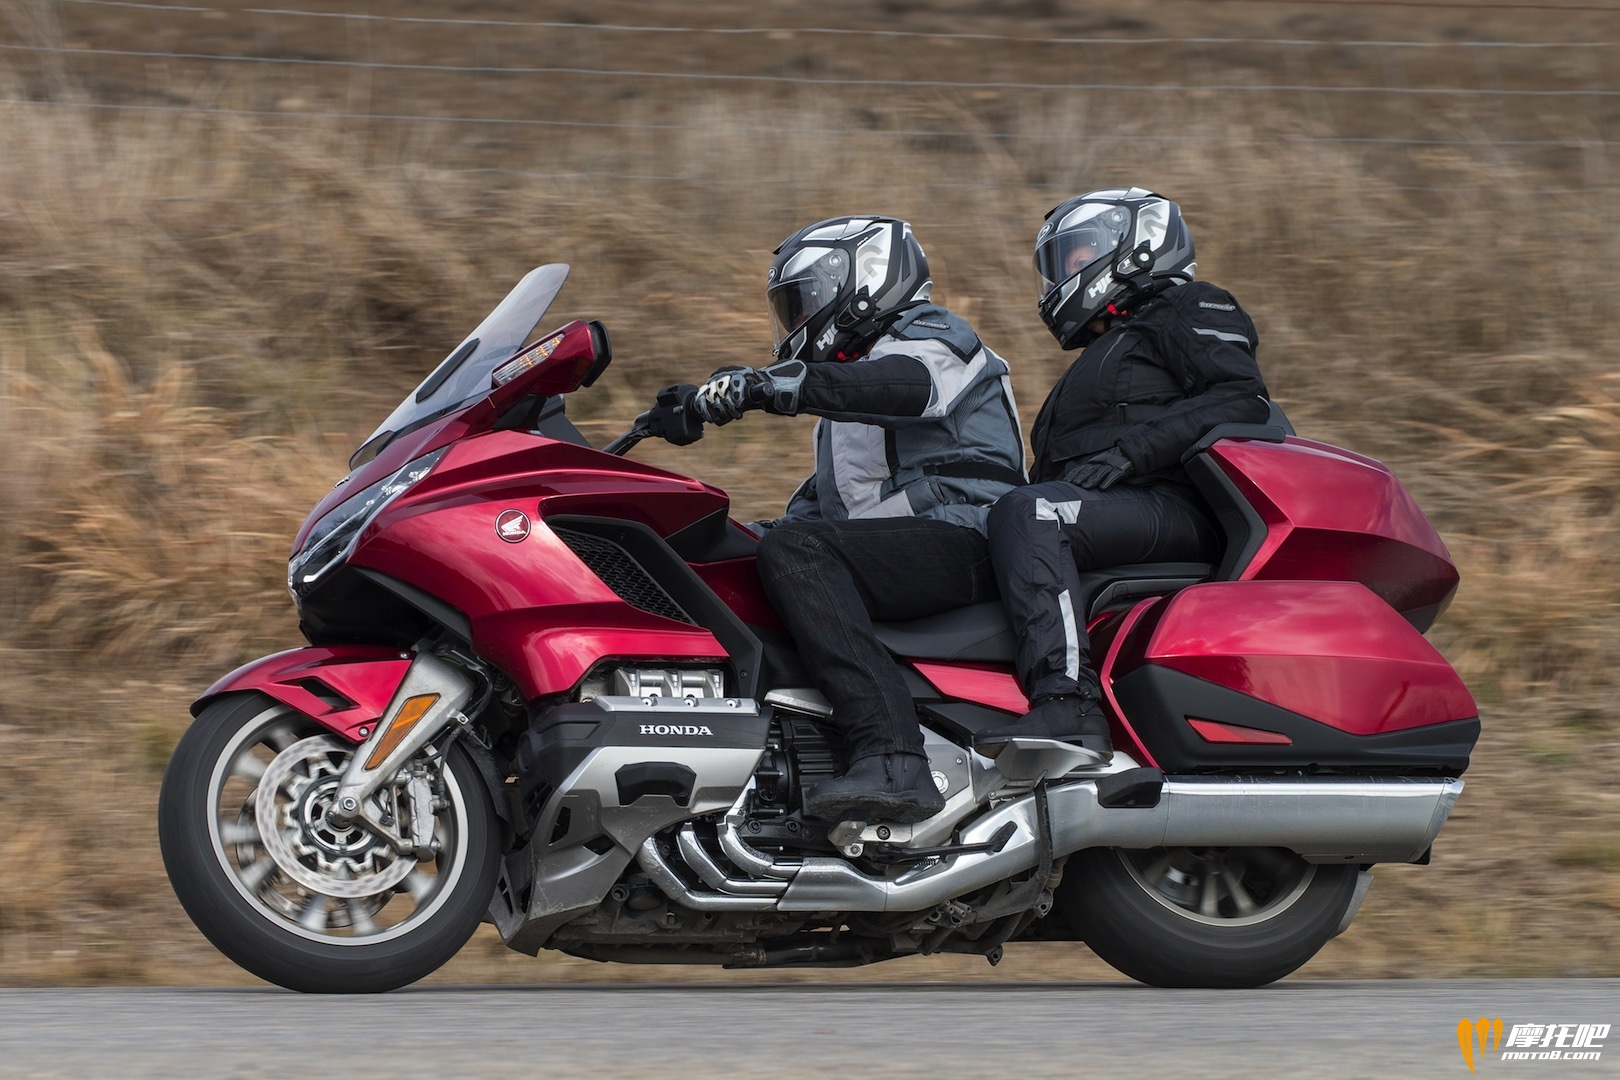 2018-Honda-Gold-Wing-Tour-DCT-Review-Motorcycle-5 (1).jpg